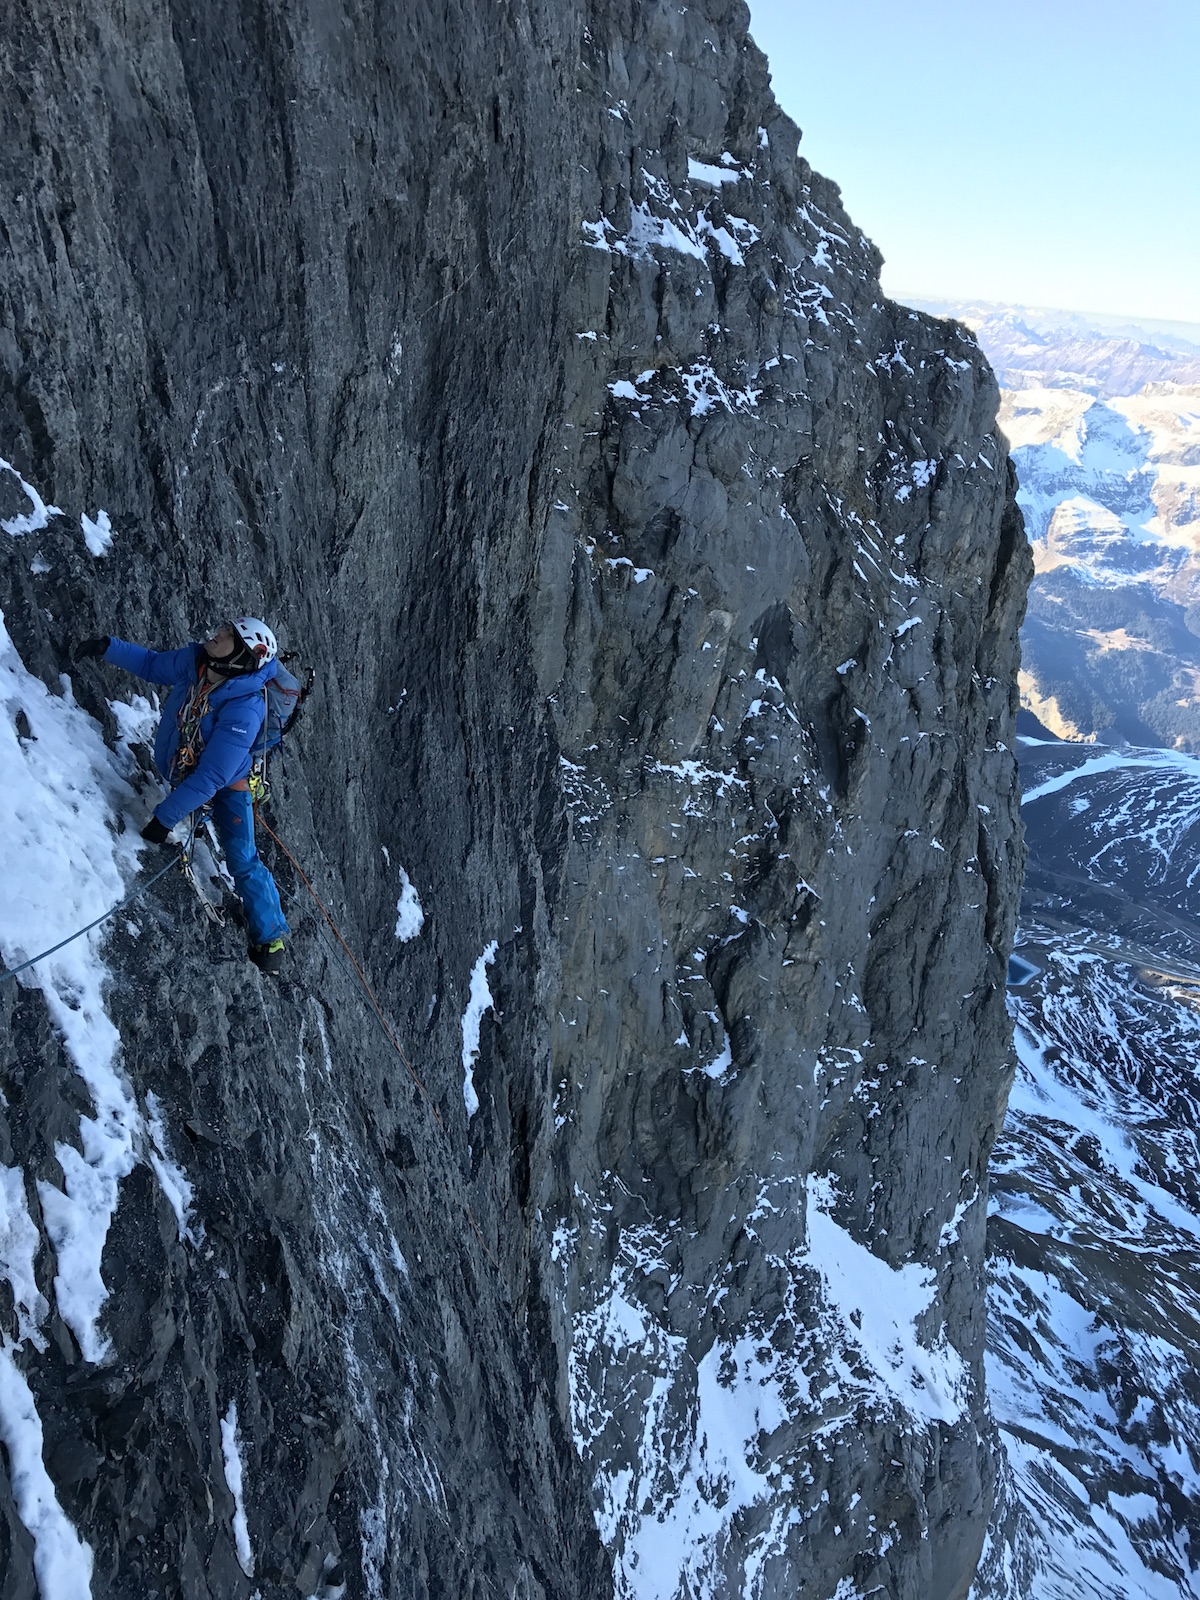 Siegrist climbs the third pitch above the central ledge. [Photo] Archive Metanoia